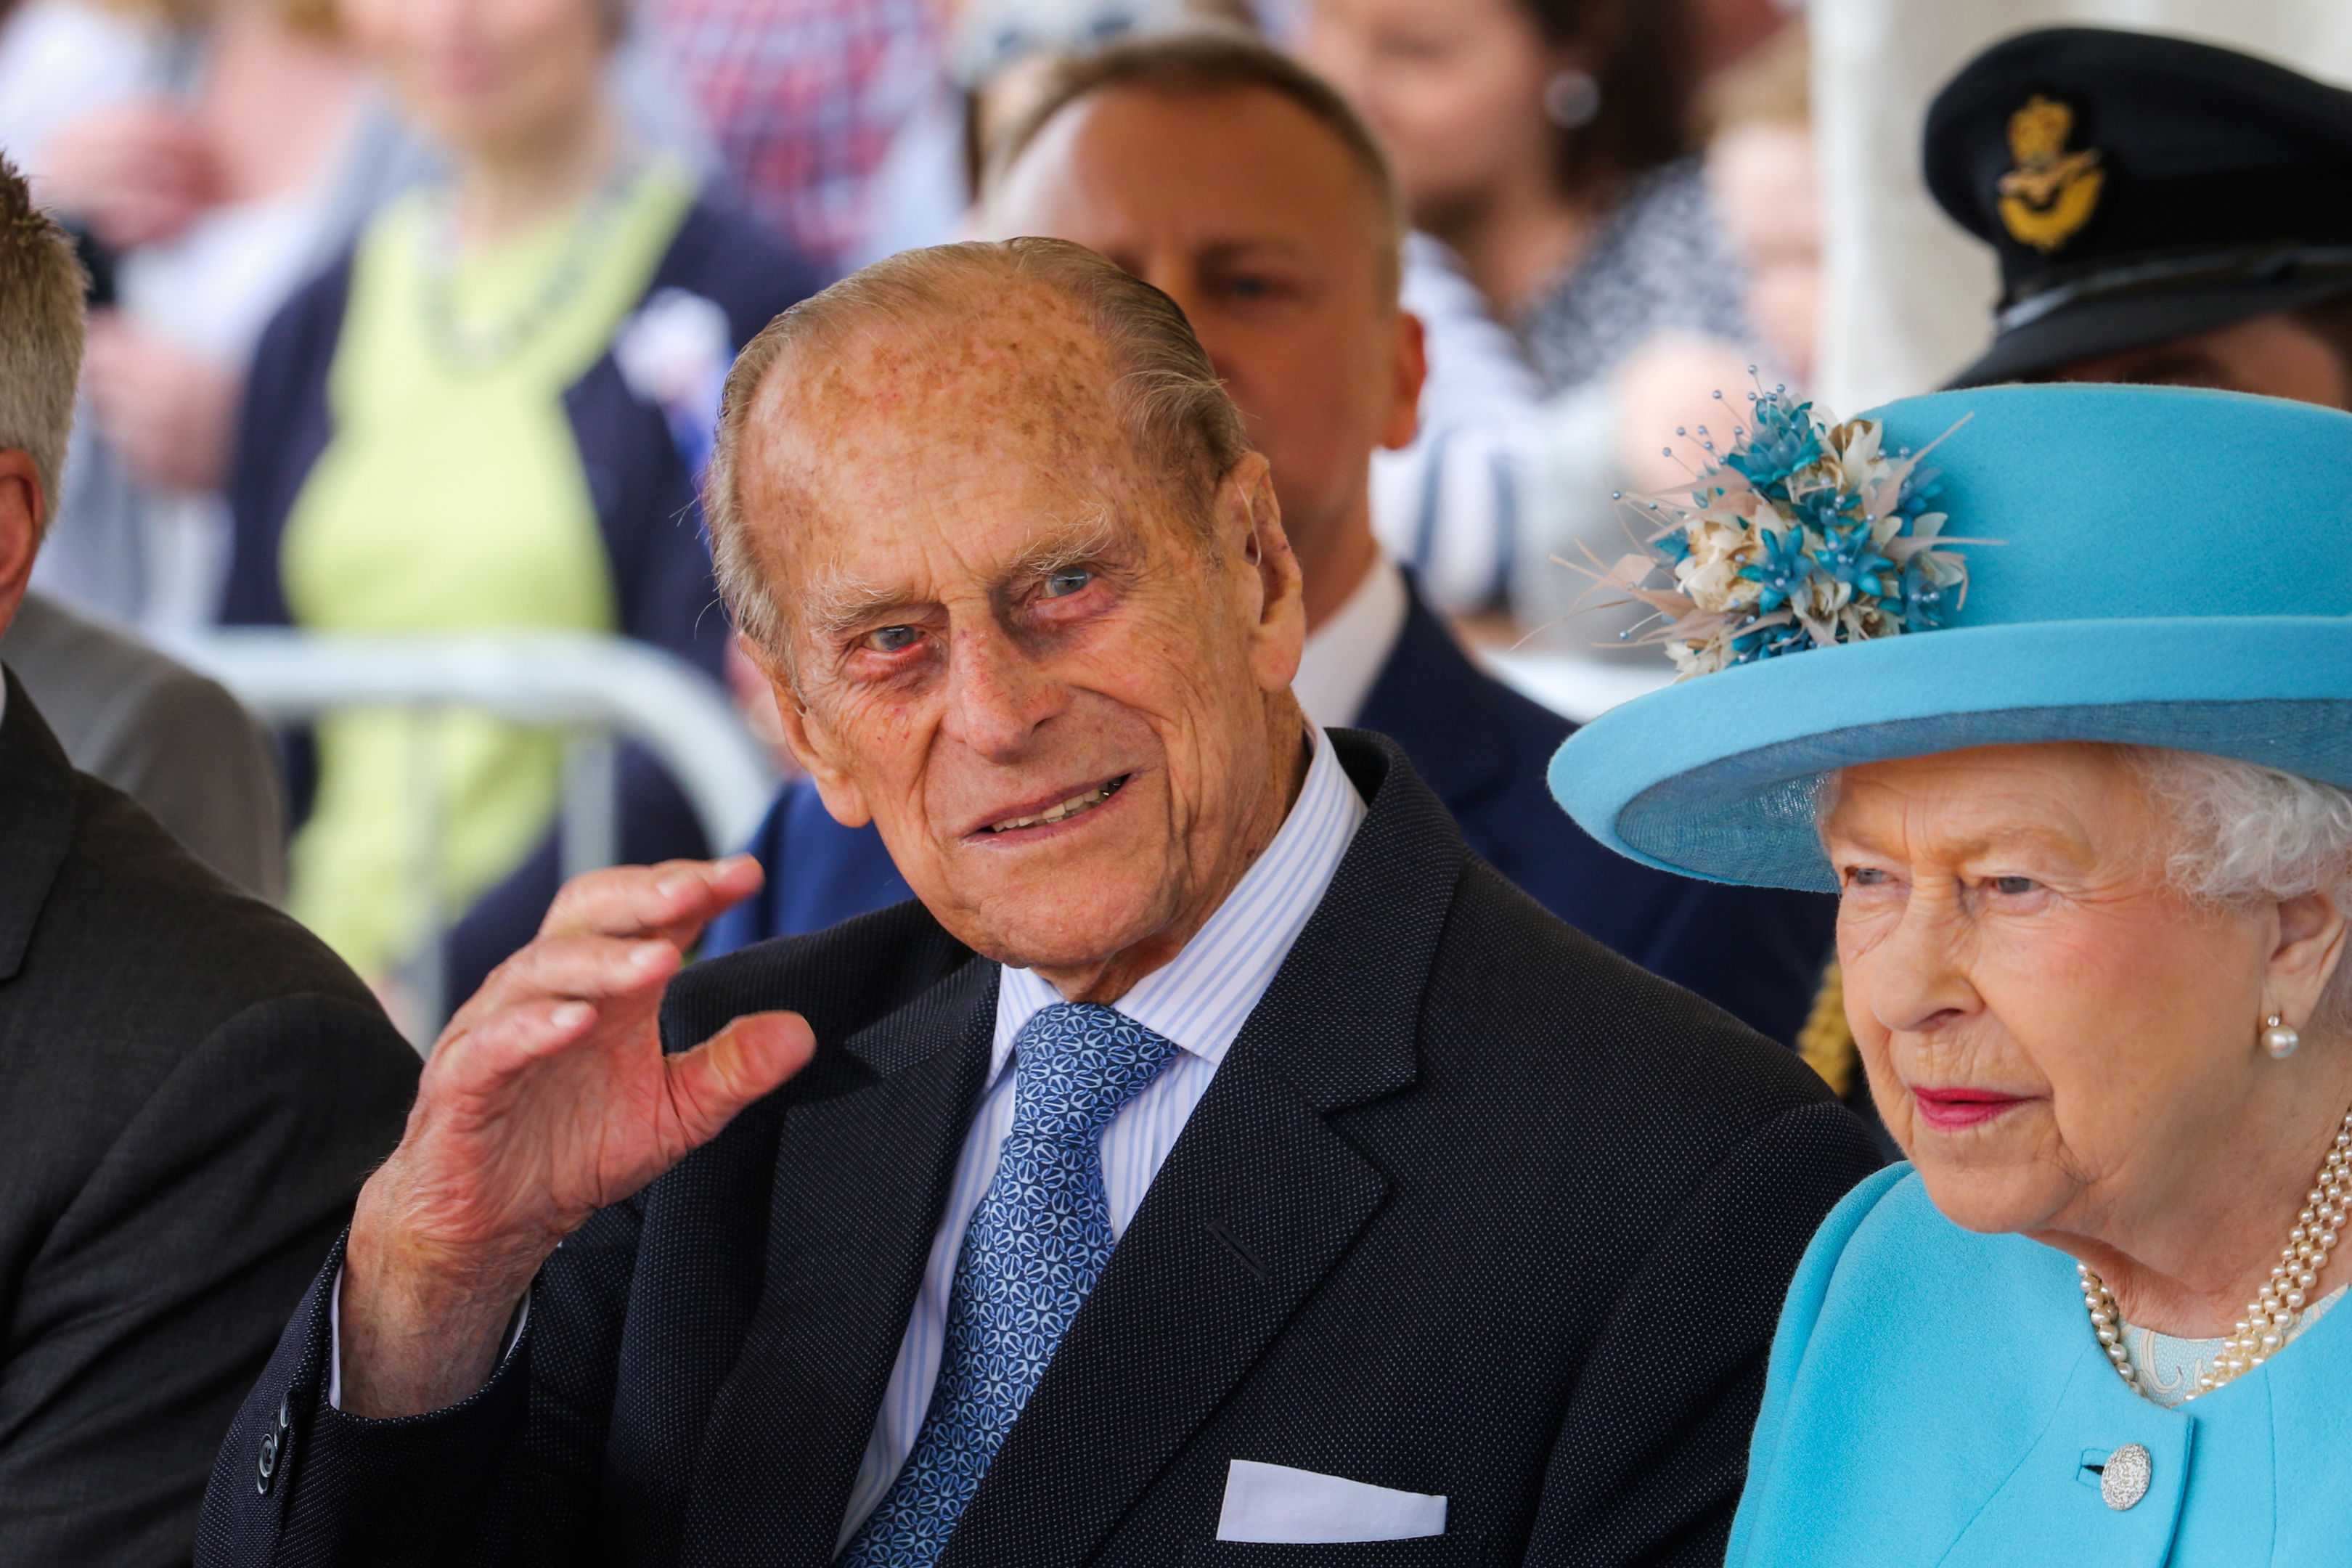 Prince Philip (Steve MacDougall / DC Thomson)